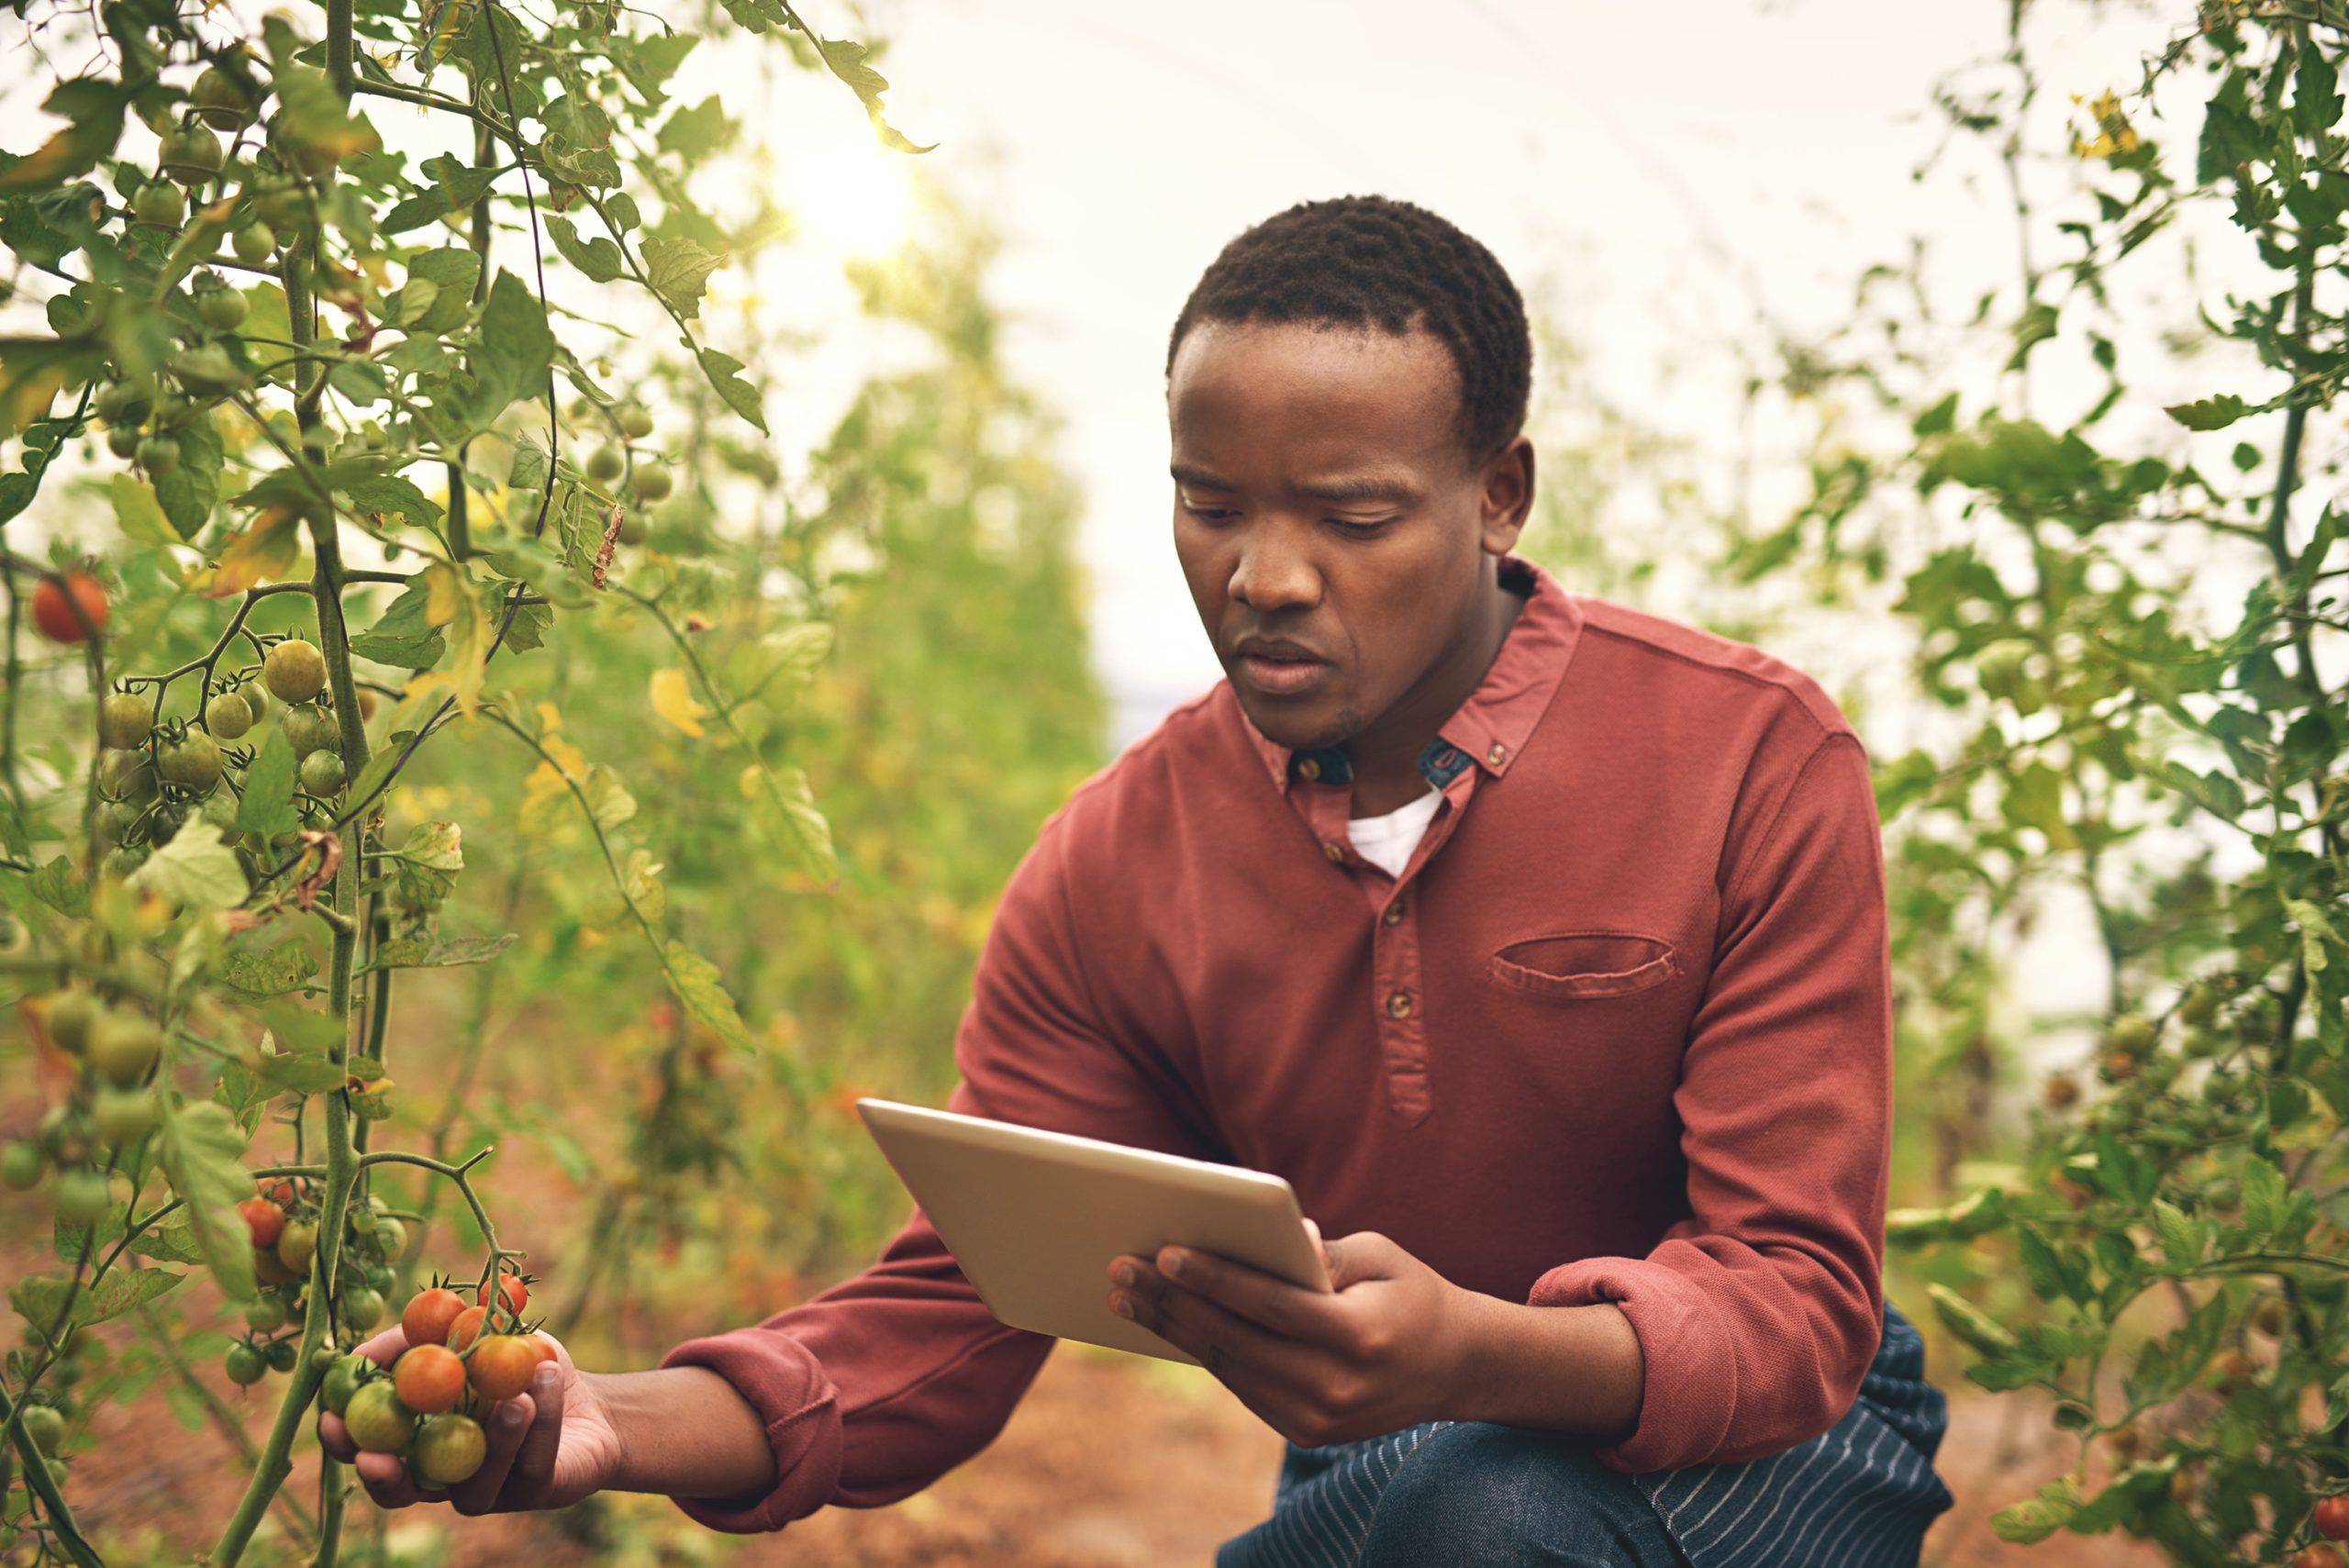 Cropped shot of a handsome young male farmer using a tablet while checking his crops